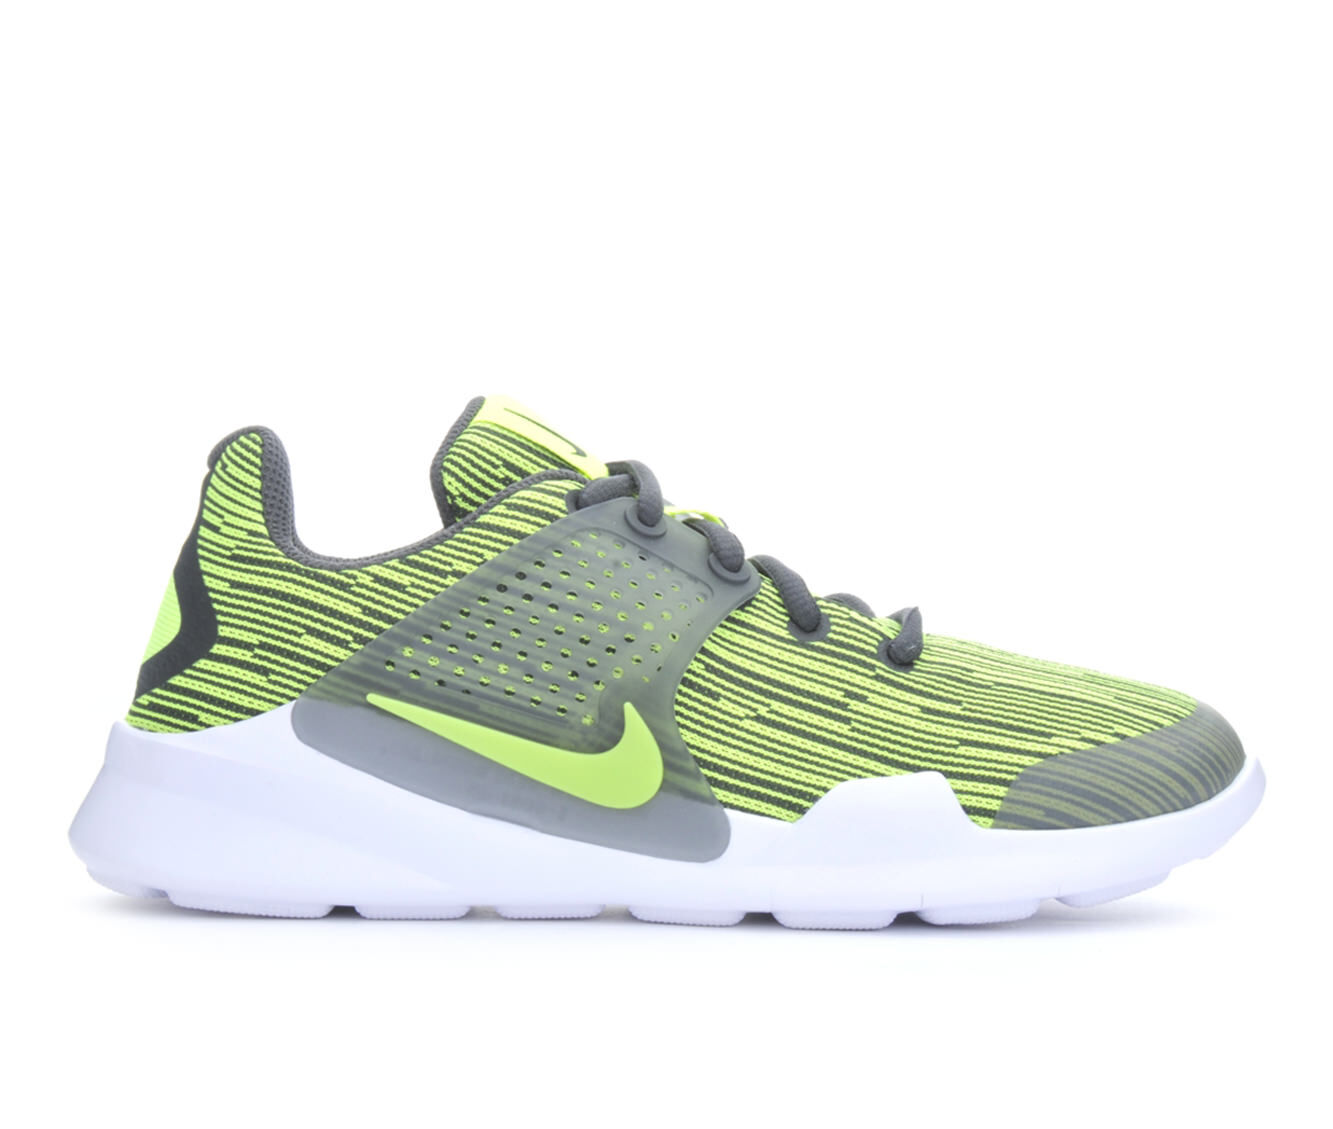 Images. Boys' Nike Arrowz SE GS Running Shoes